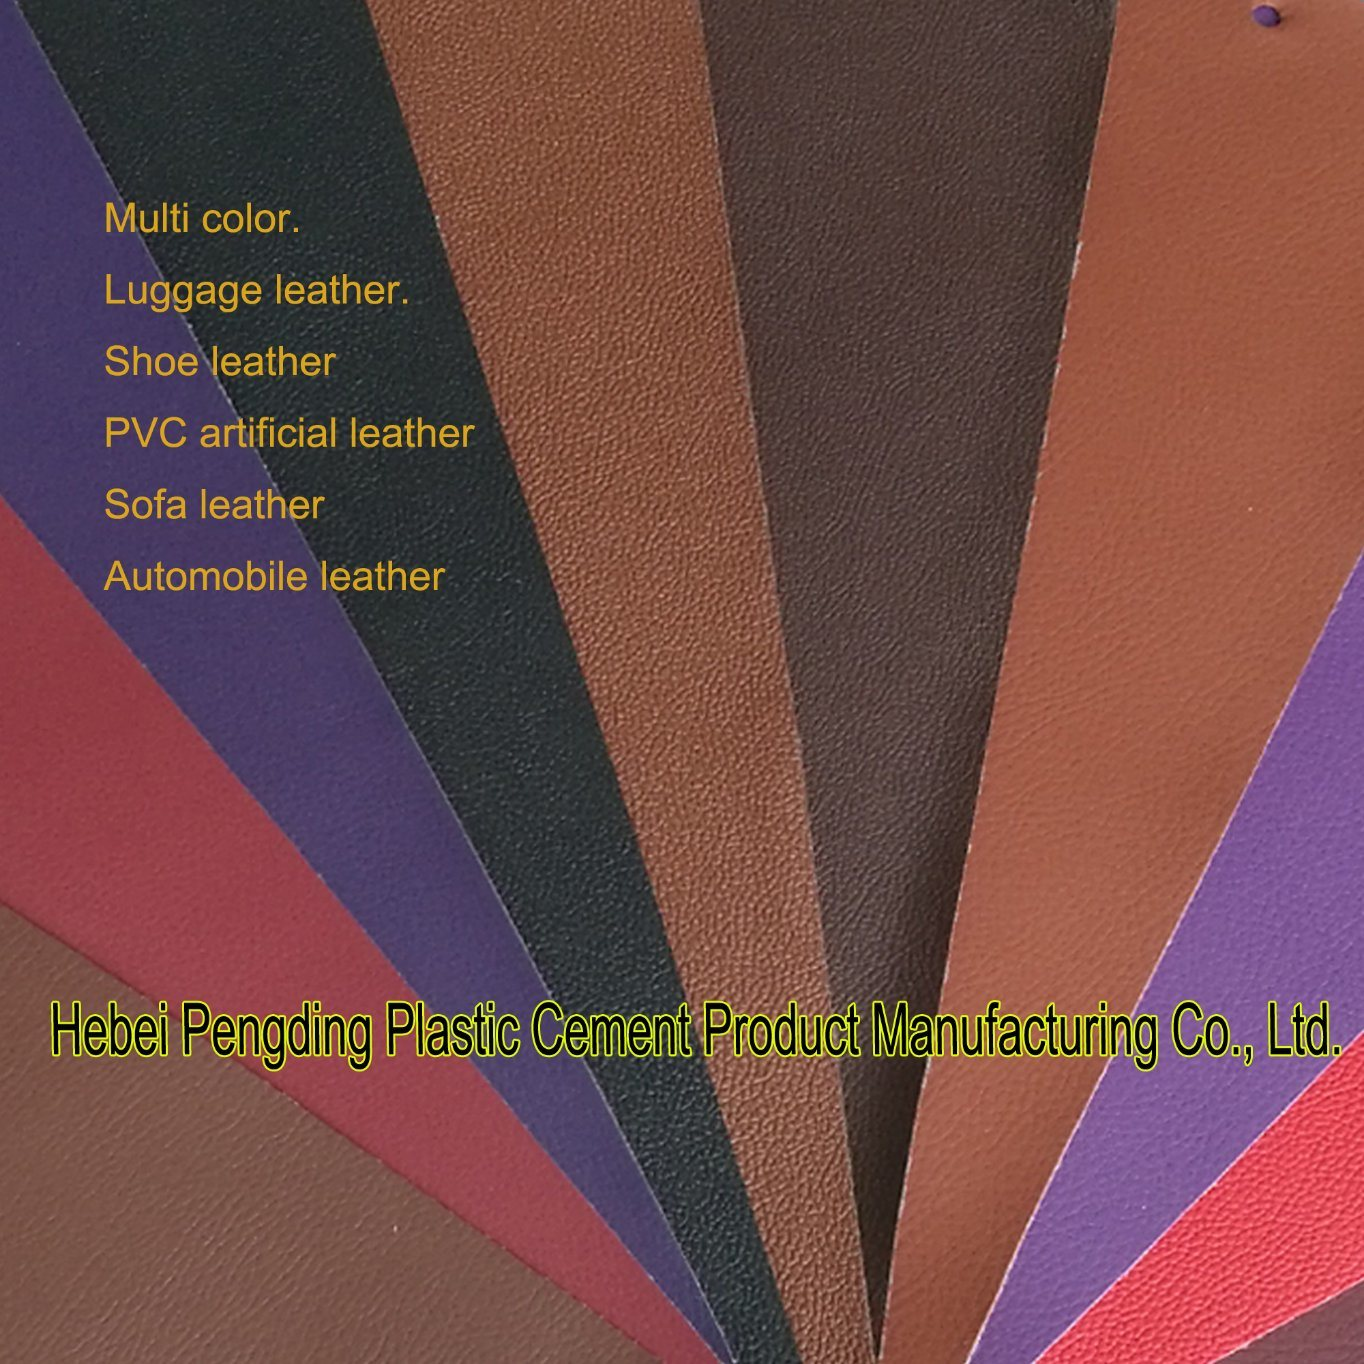 Toothpick PVC Artificial Leather PVC Leather Bags Leather